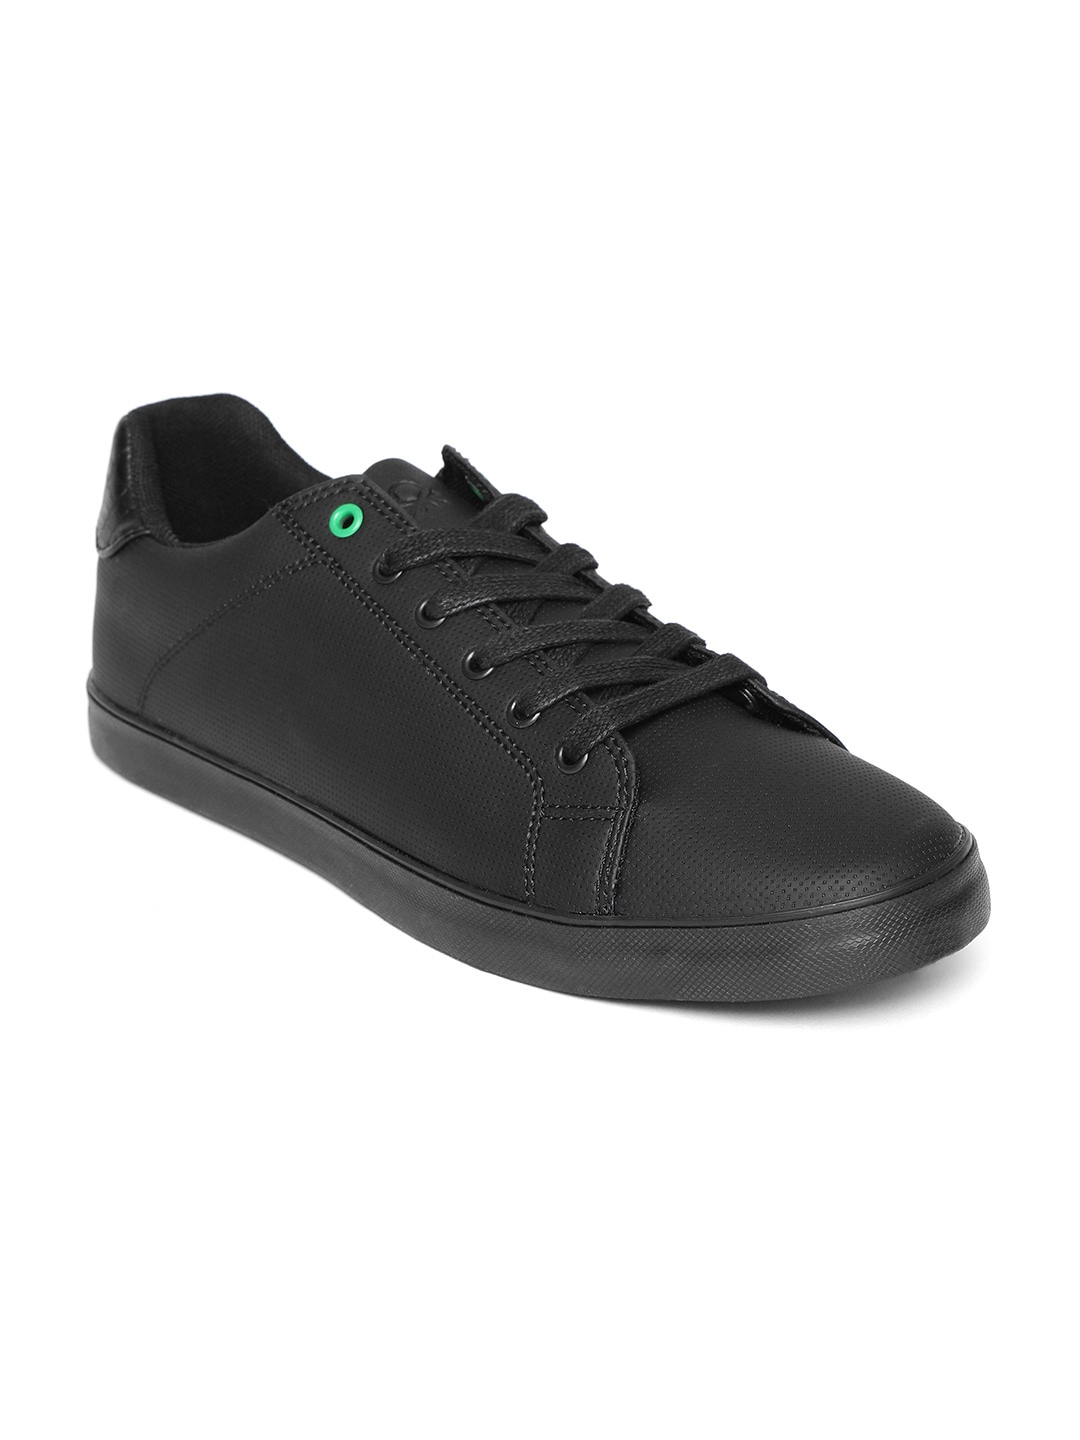 buy online 13a9f 4b11f Casual Shoes For Men - Buy Casual   Flat Shoes For Men   Myntra